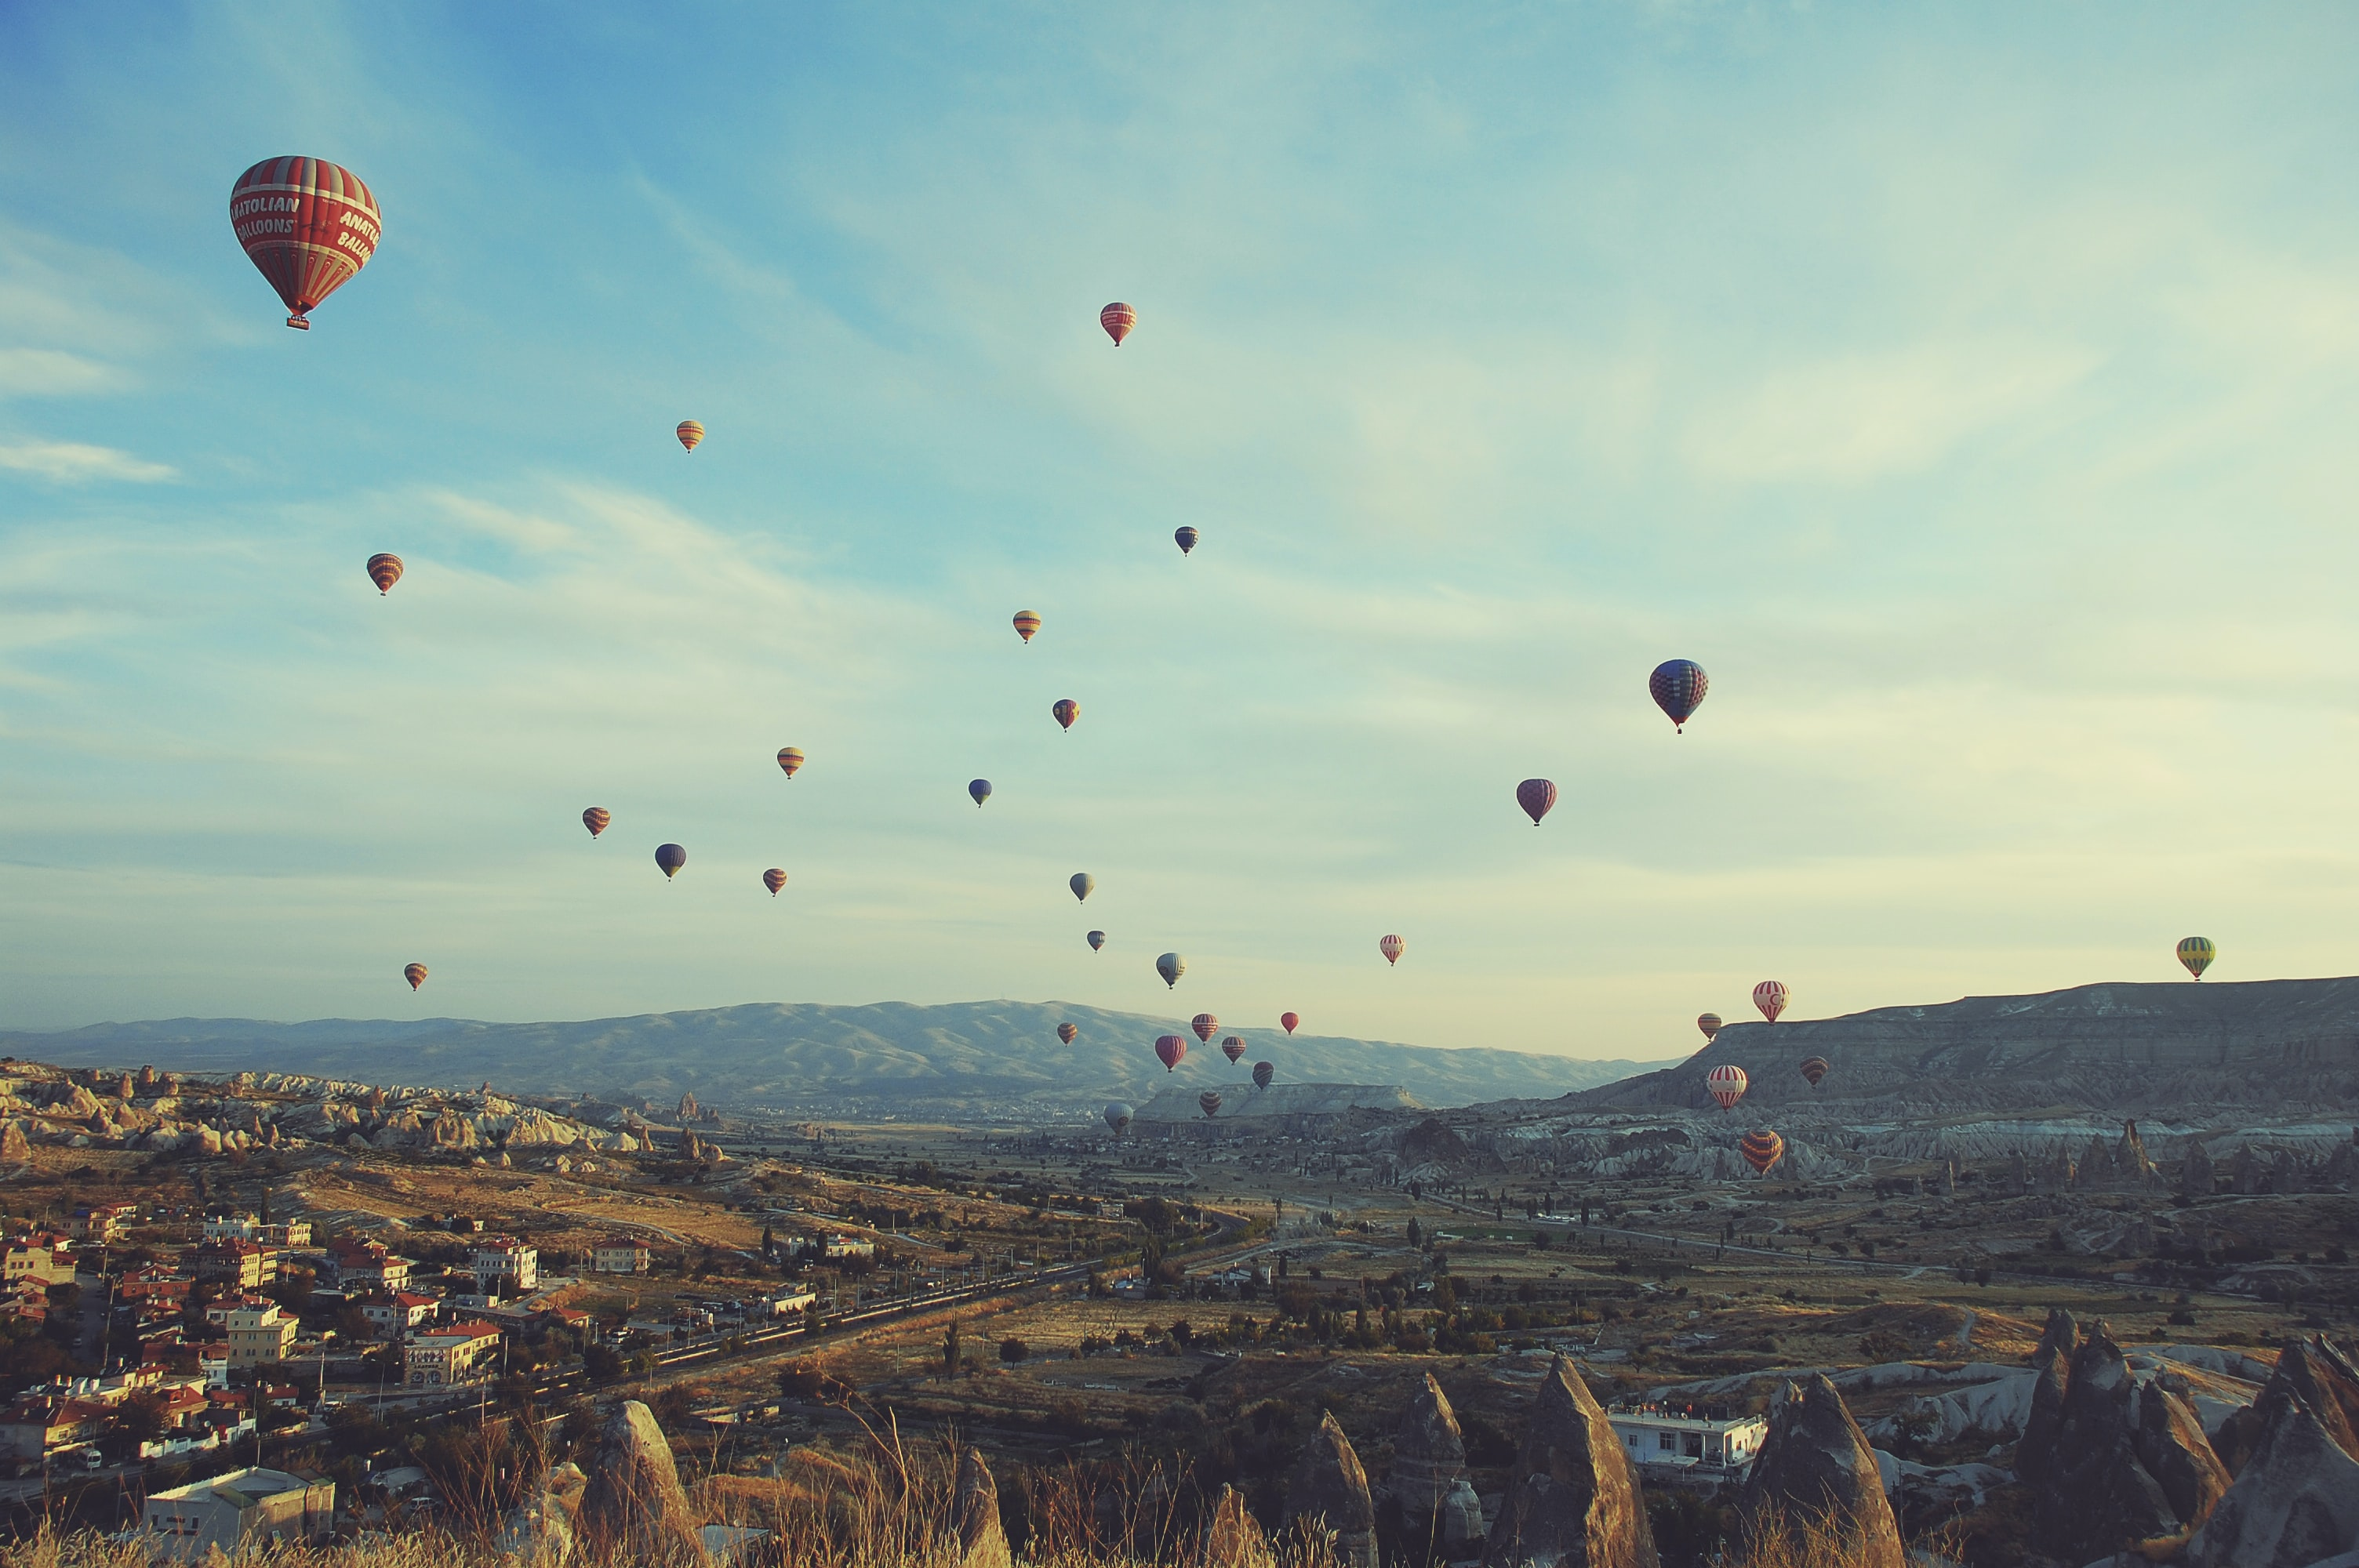 assorted-color hot air balloons during day time